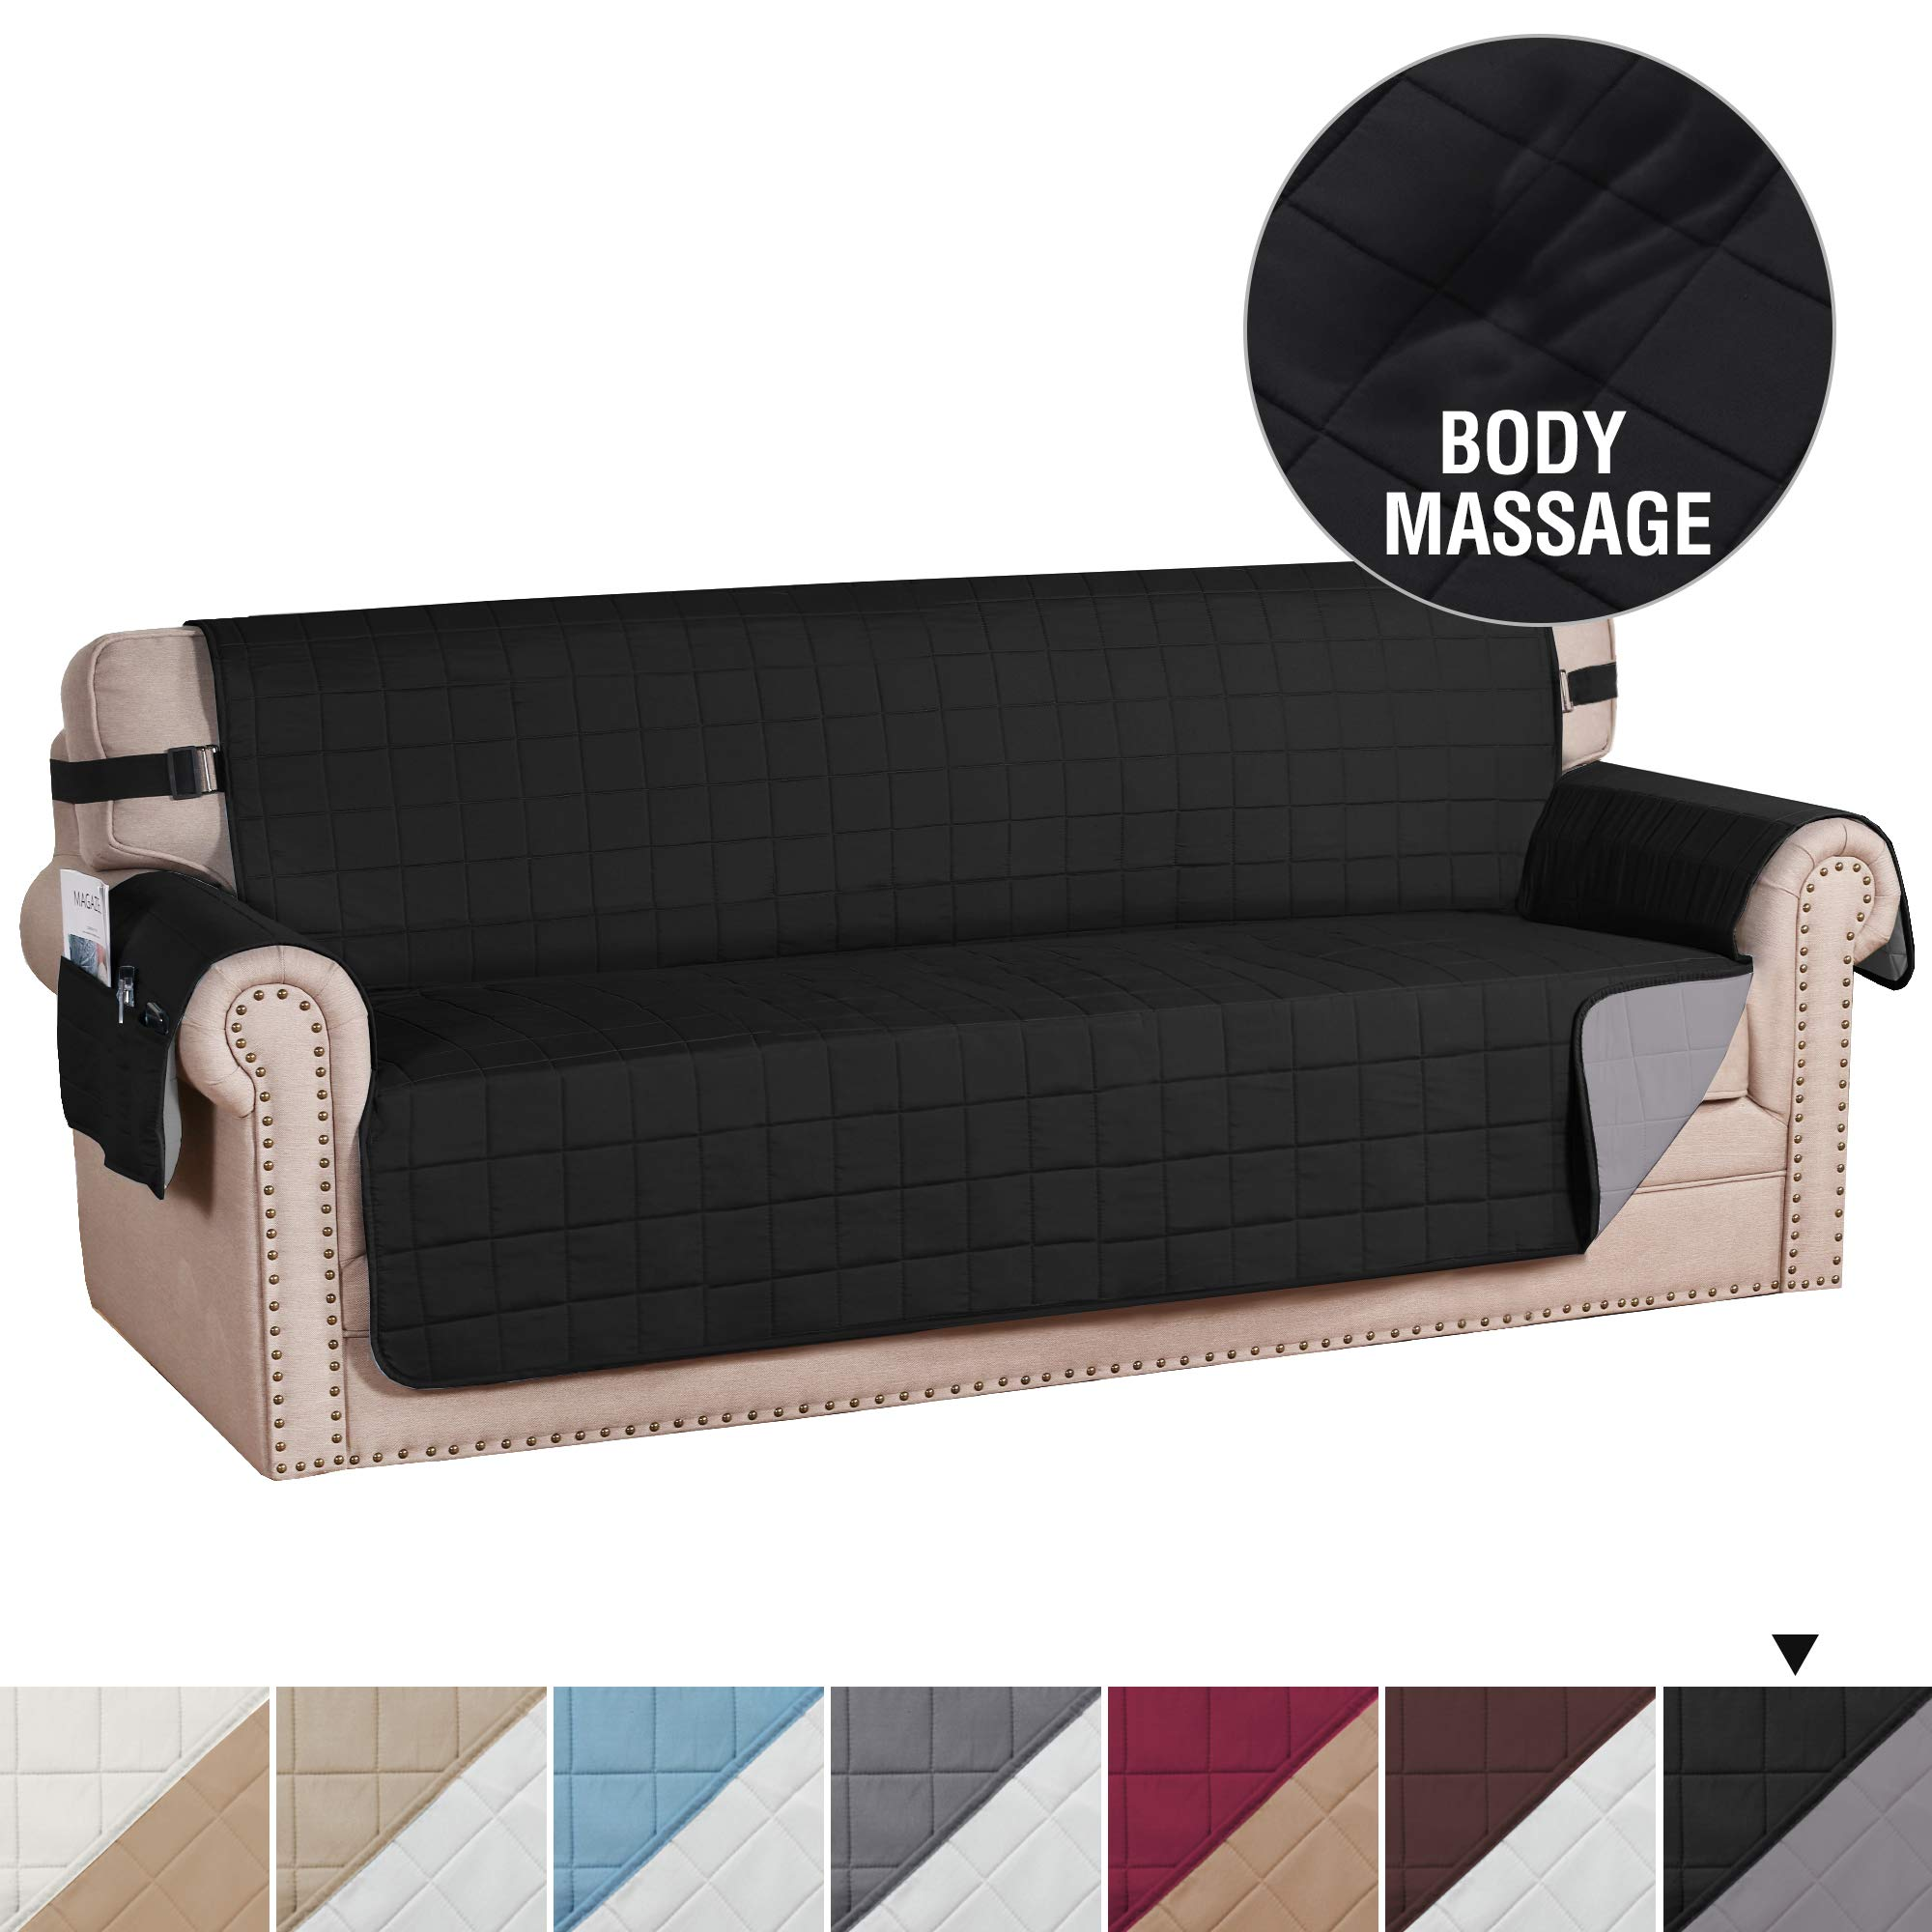 """H.VERSAILTEX Sofa Slipcover Reversible Couch Cover Foam Quilted Sofa Covers for Dog Water-Repellent Furniture Protector with Side Pocket Seat Width up to 78"""" (XL Sofa, Black/Grey)"""